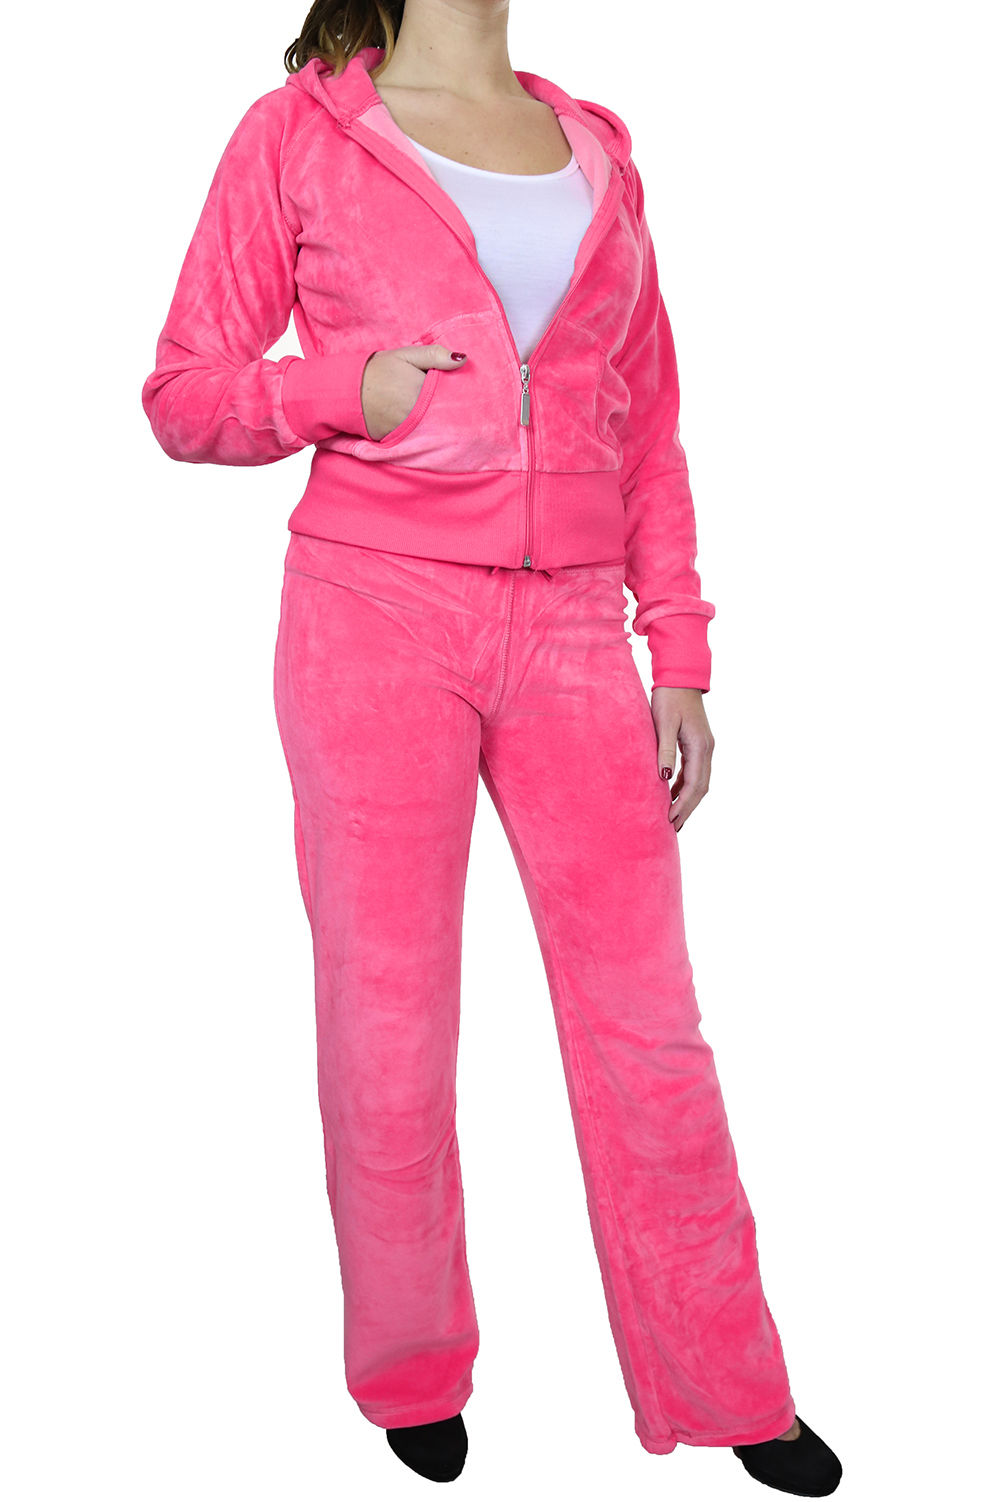 Women's leisure suits are two-piece clothing including tops and bottoms. Many women are fond of leisure suits because leisure suits are perfect collocation with fashion and comfort. Ladies leisure suits are divided into 2 types, dress suits and pant suits. Ericdress offers both dress suits and.